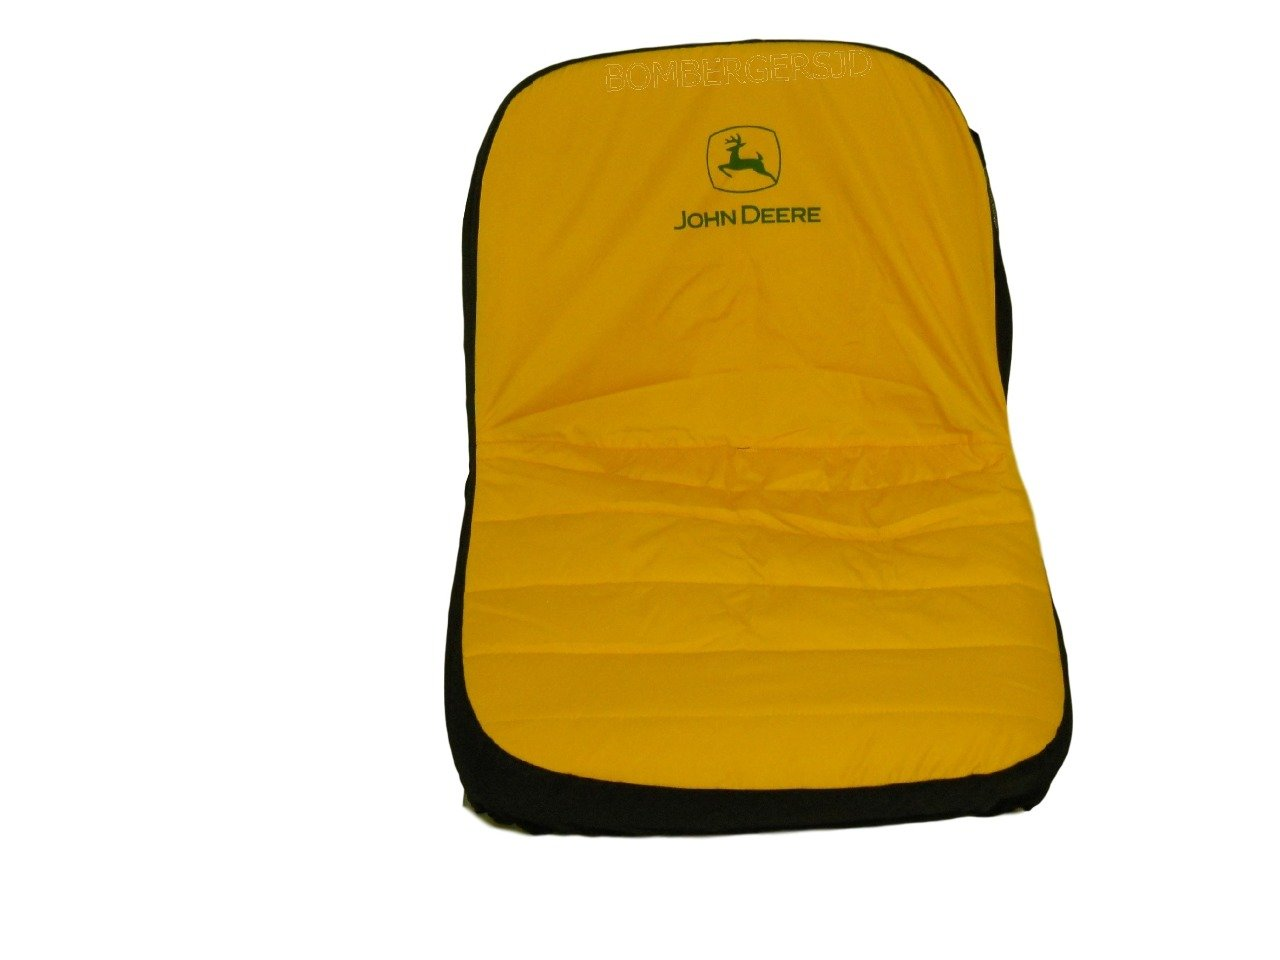 John Deere Car Seat Covers : John deere tractor seat covers uk velcromag